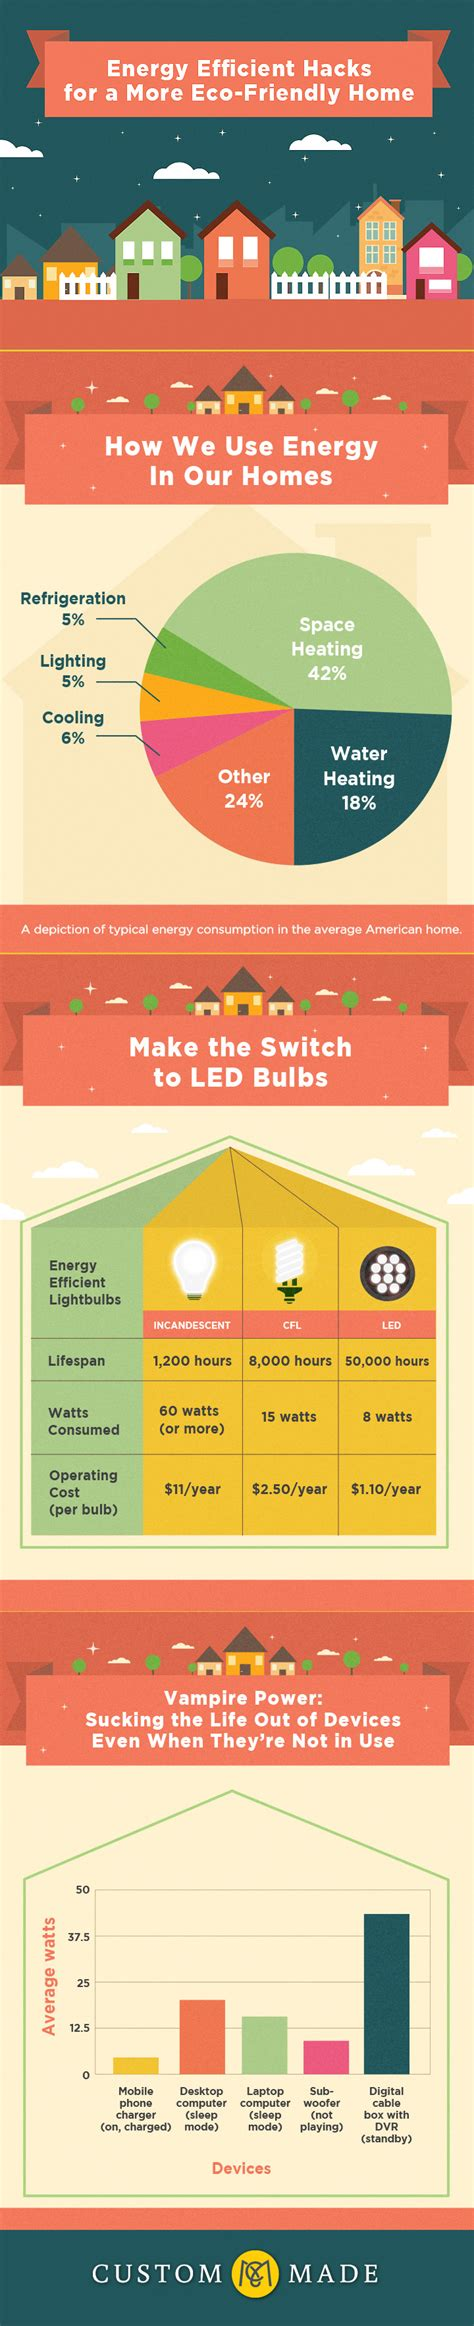 Blogger Energy | energy efficient hacks for a more eco friendly home energy